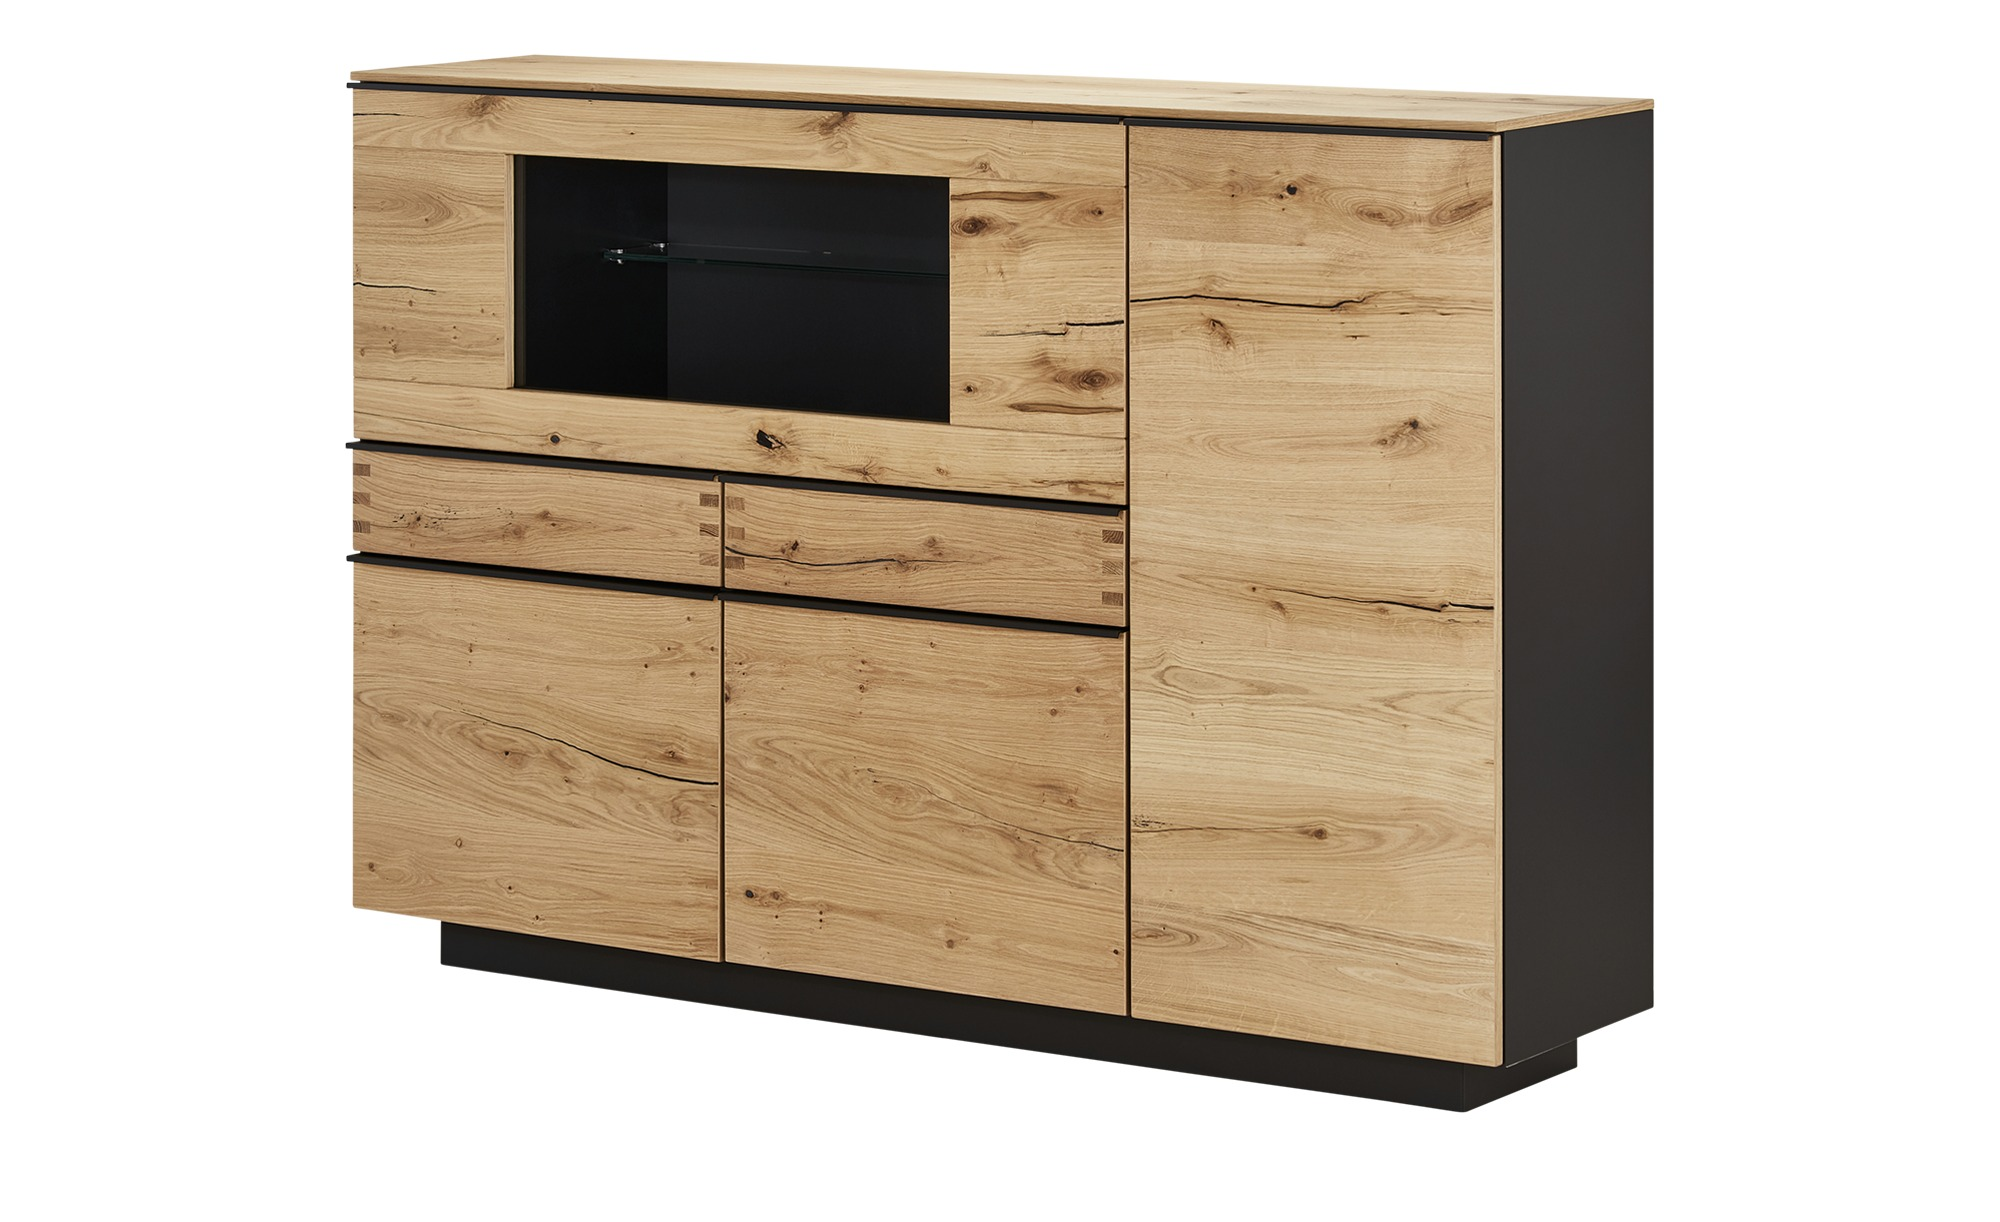 Highboard  Light Line 6 ¦ holzfarben ¦ Maße (cm): B: 176 H: 121 T: 40 Kommoden & Sideboards > Highboards - Höffner